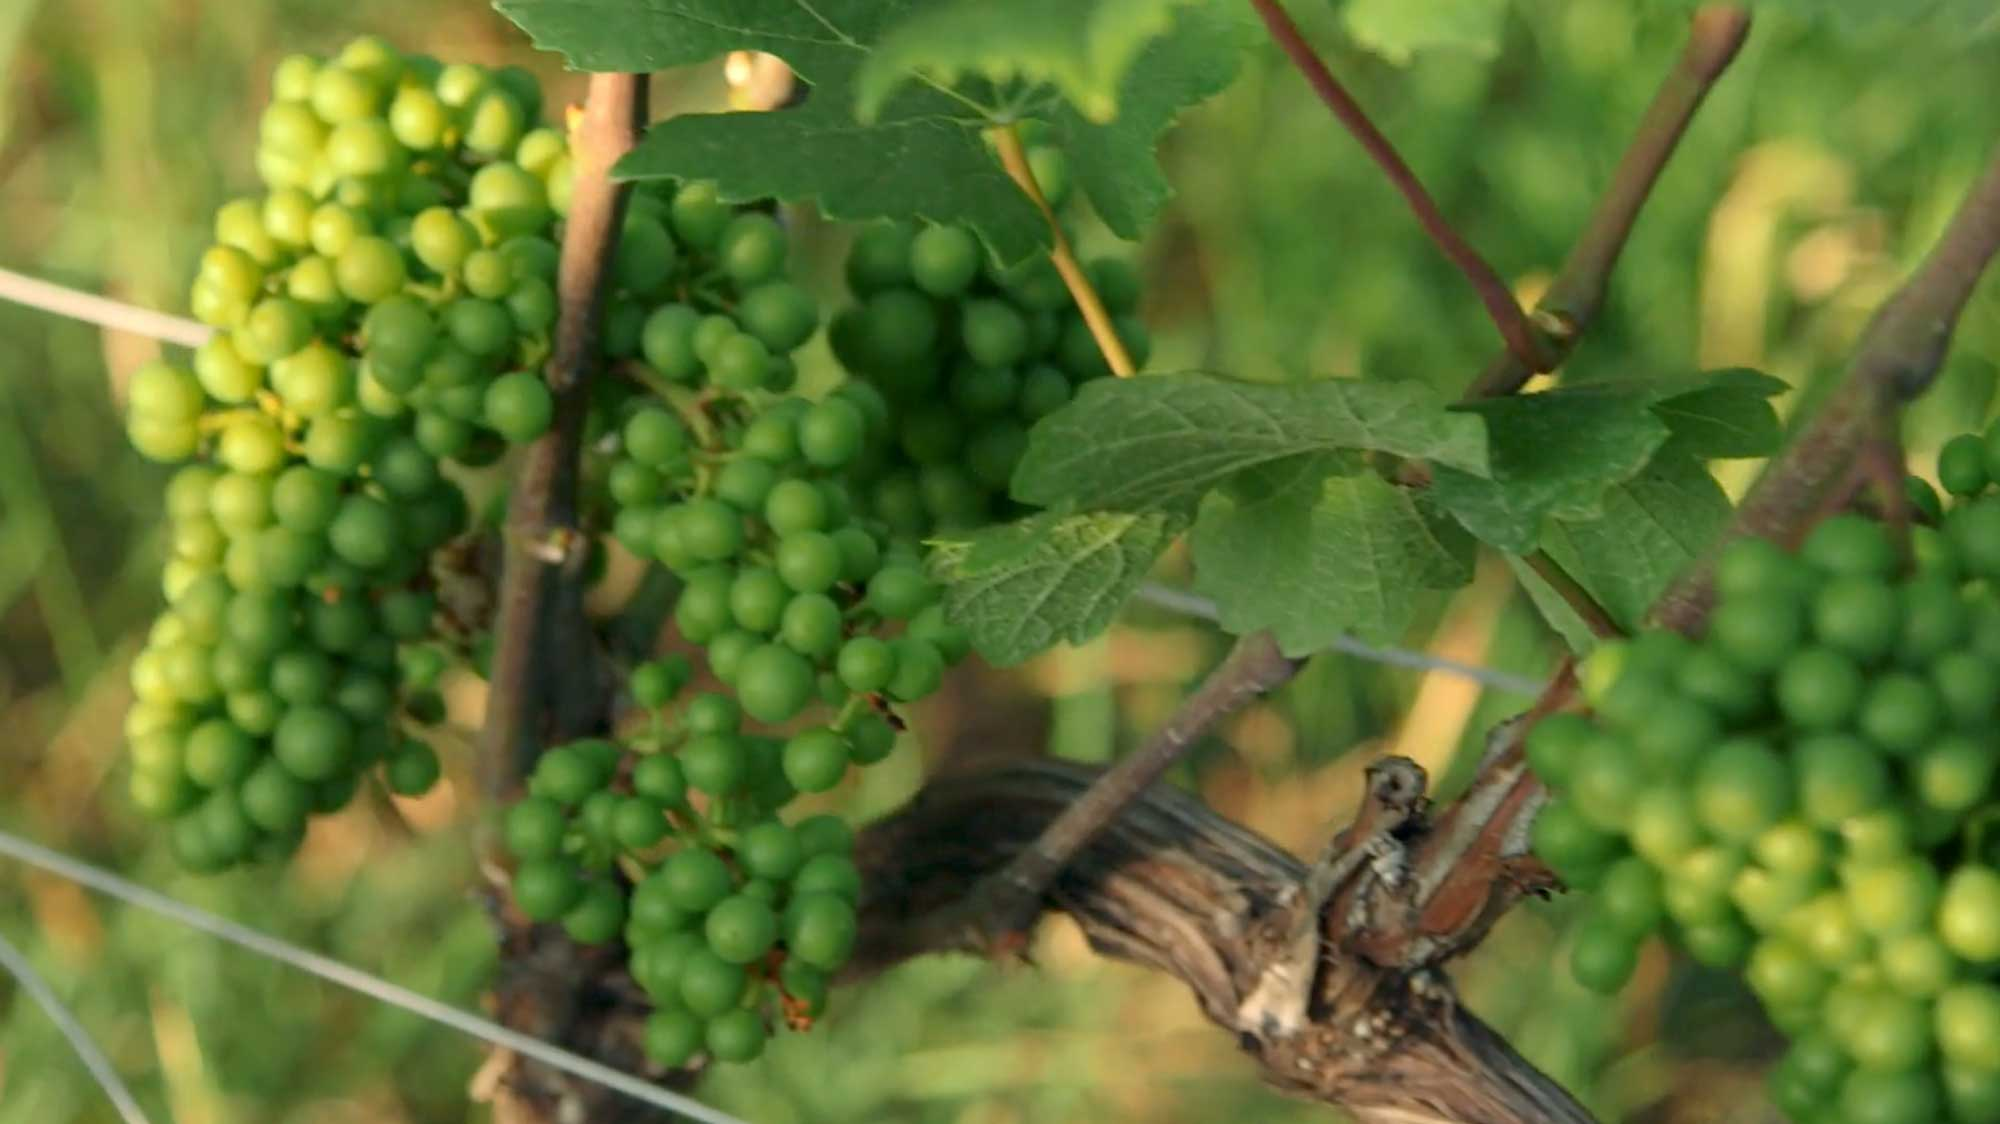 Photograph of green grapes growing on a vine.